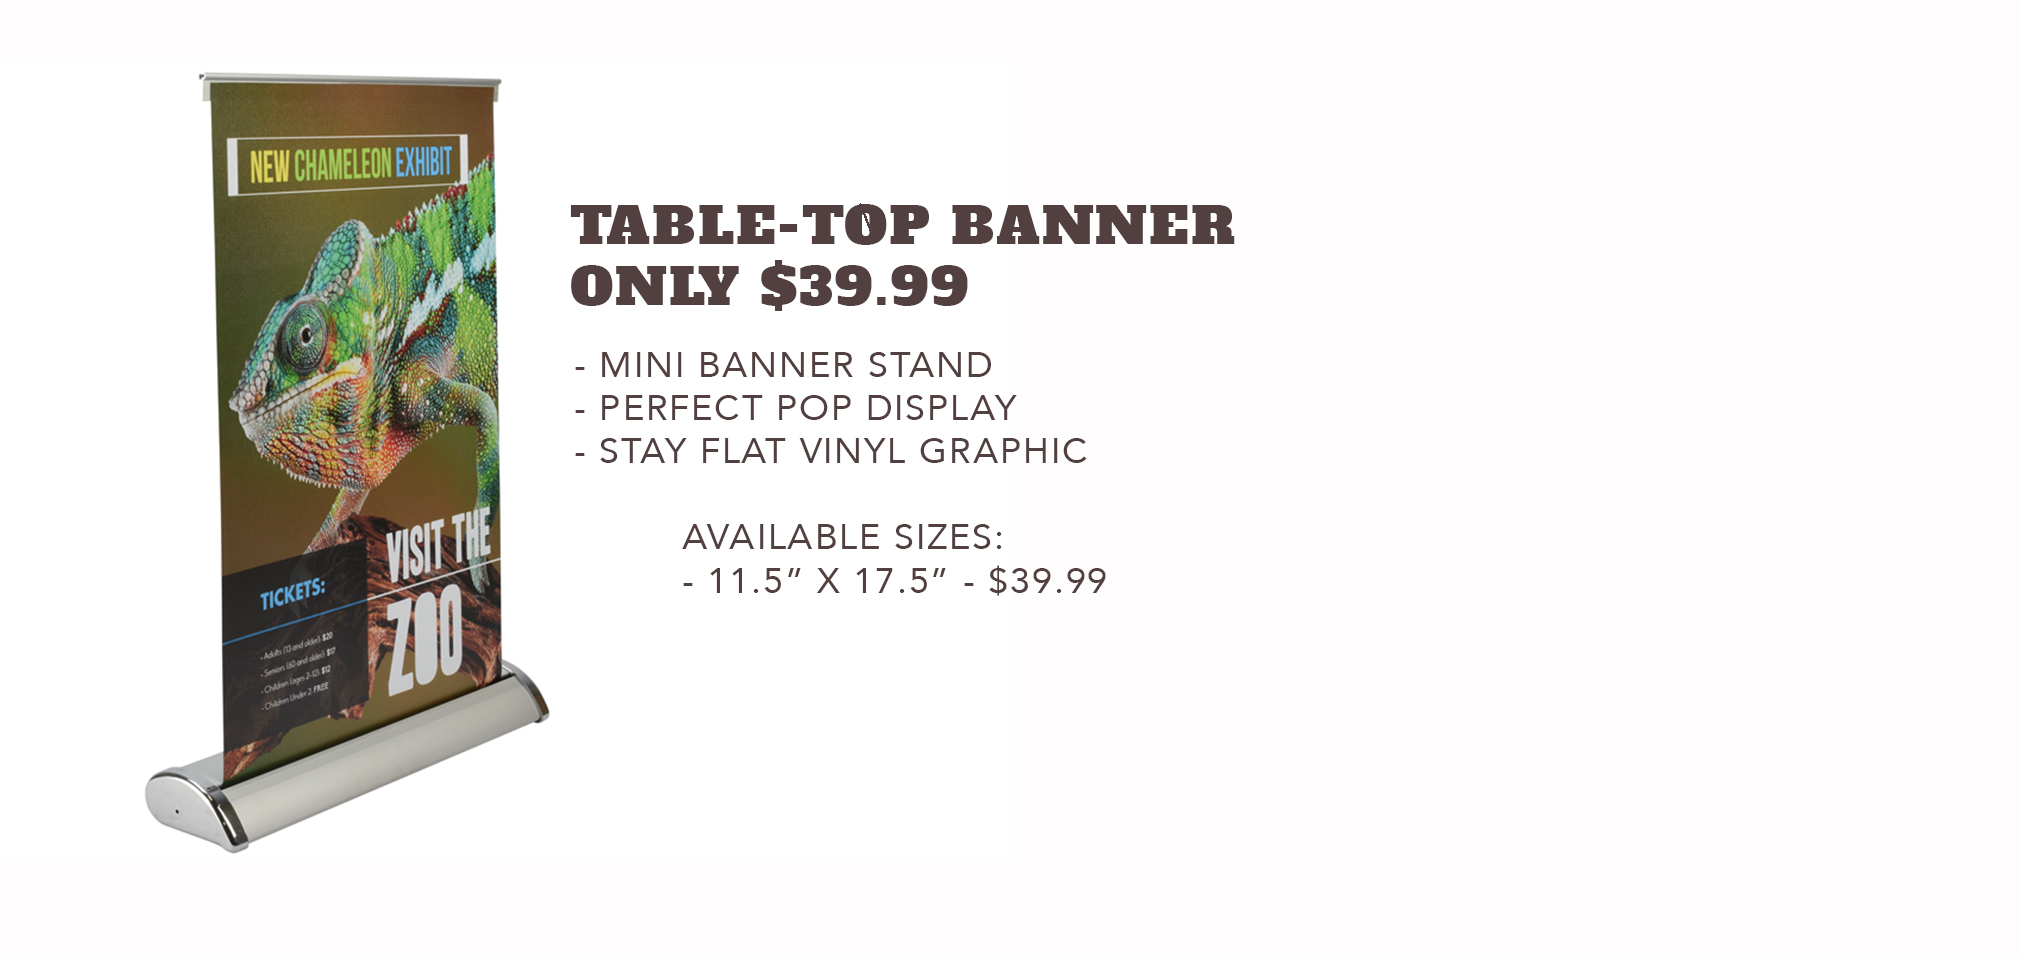 Table-Top Banner - Only $39.99